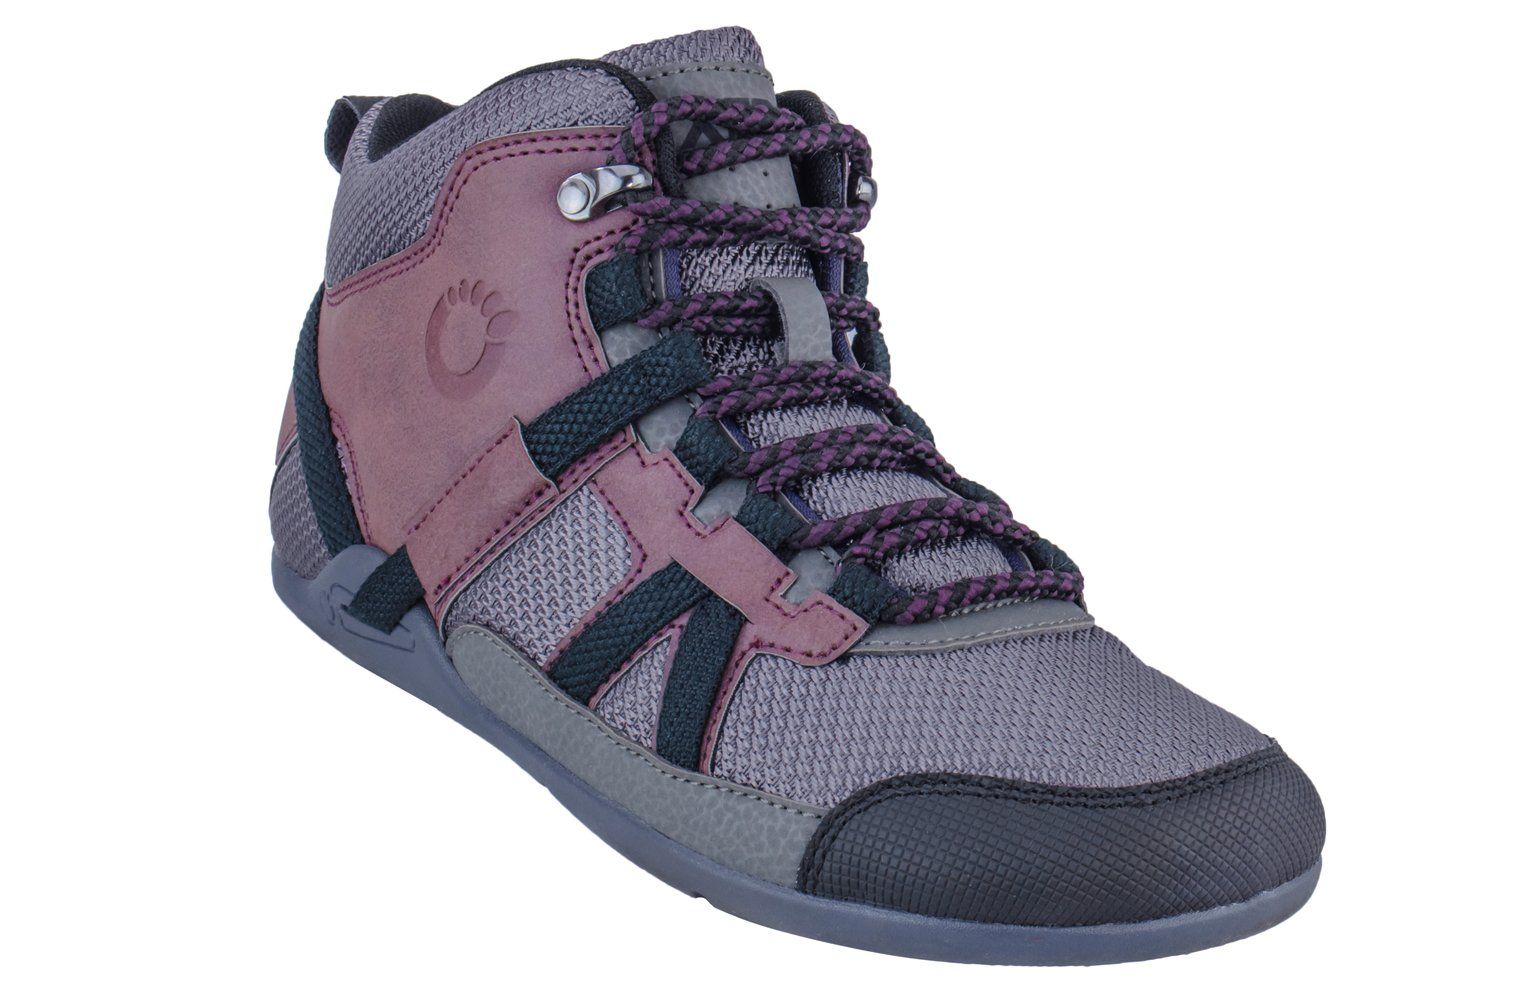 Xero Shoes DayLite Hiker - Lightweight Minimalist, Barefoot-Inspired Hiking Boot - Women's 8.5